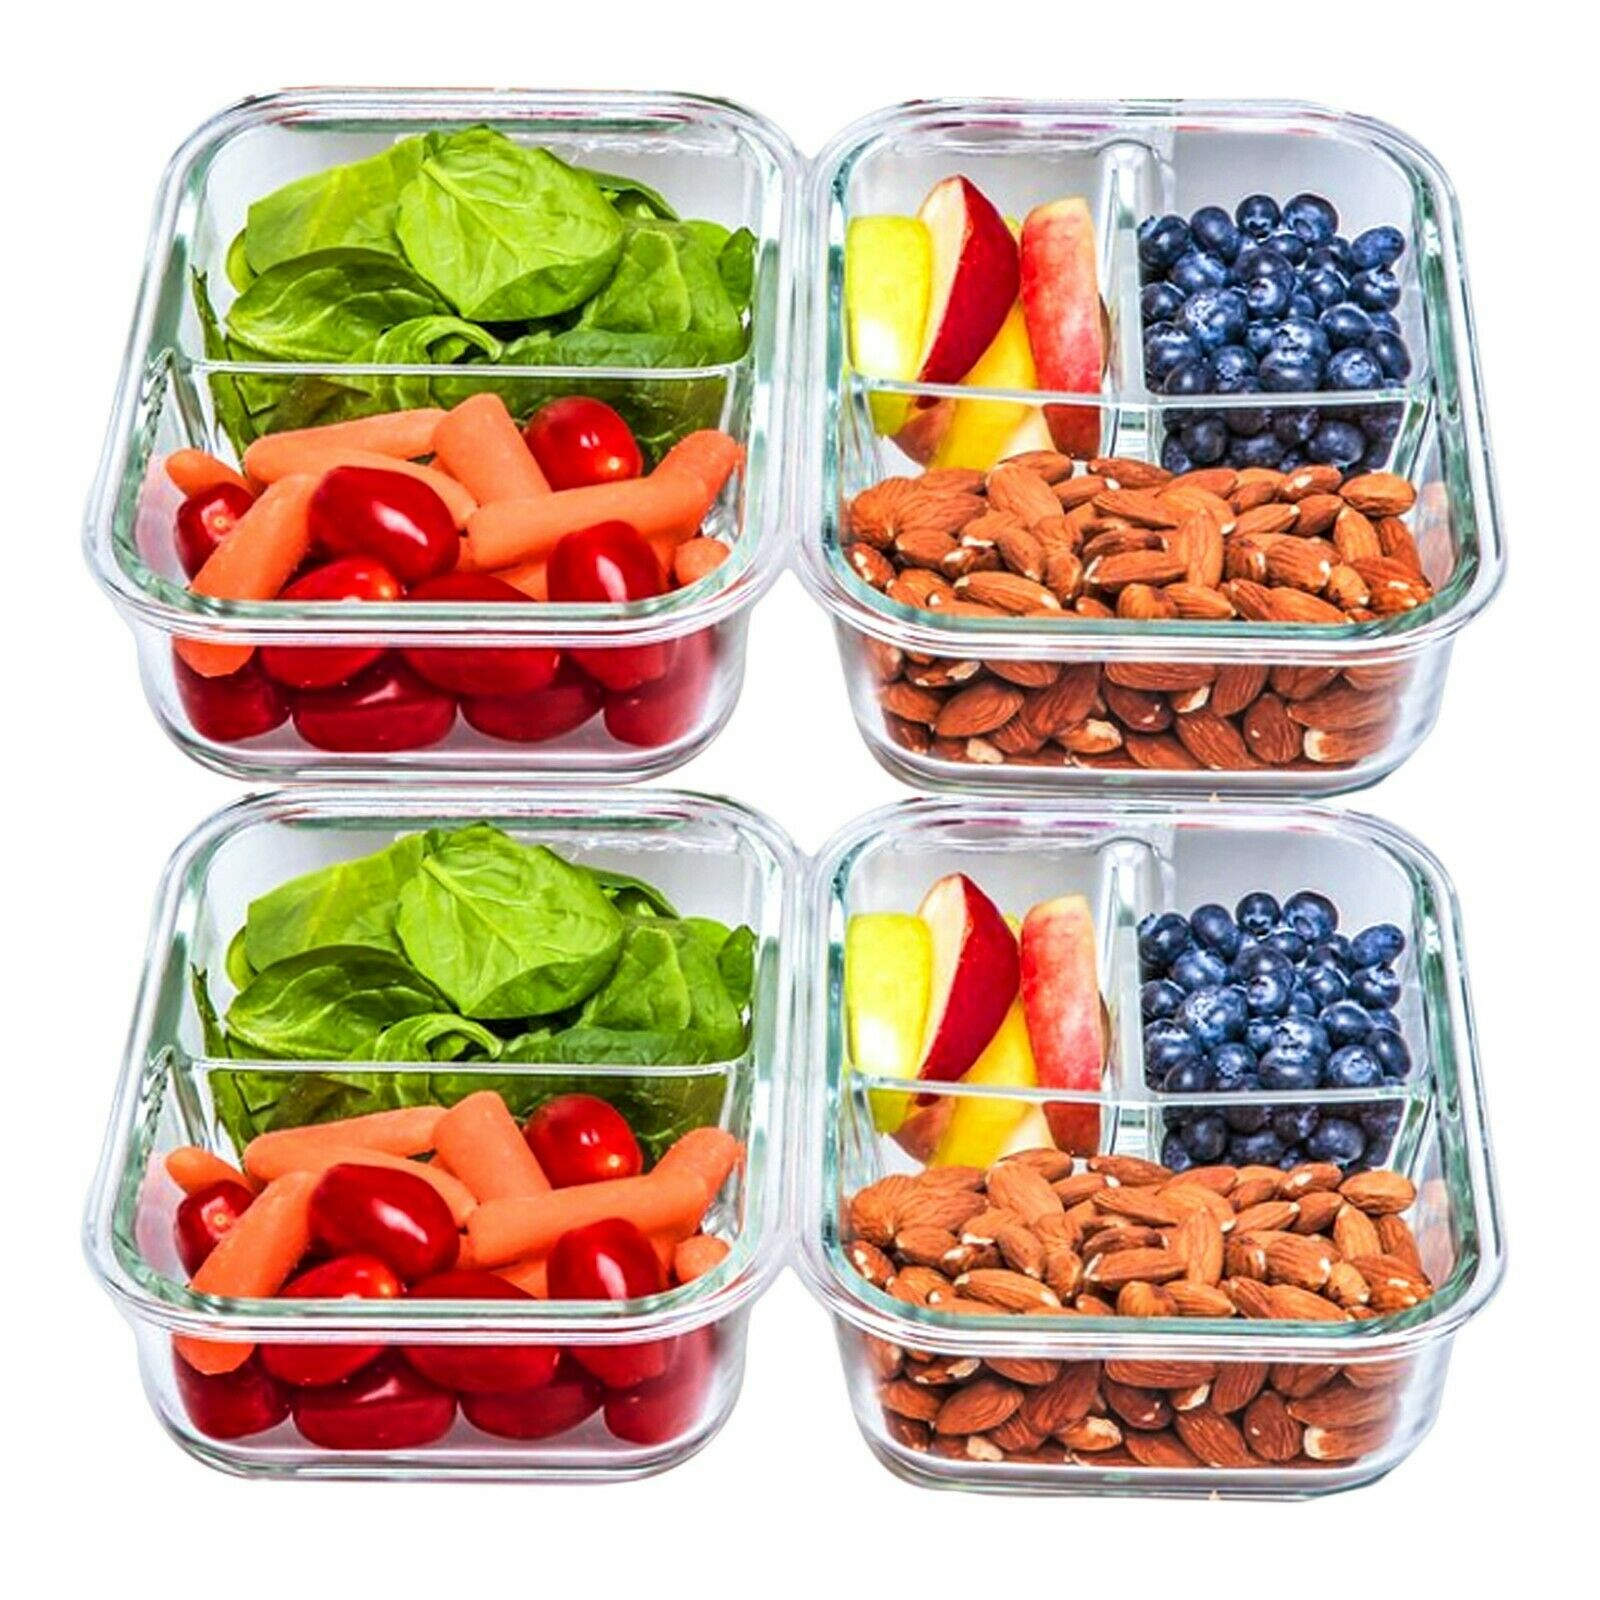 2 & 3 Compartment Glass Meal Prep Food Storage Containers - 32 Oz, 4 Pack 1